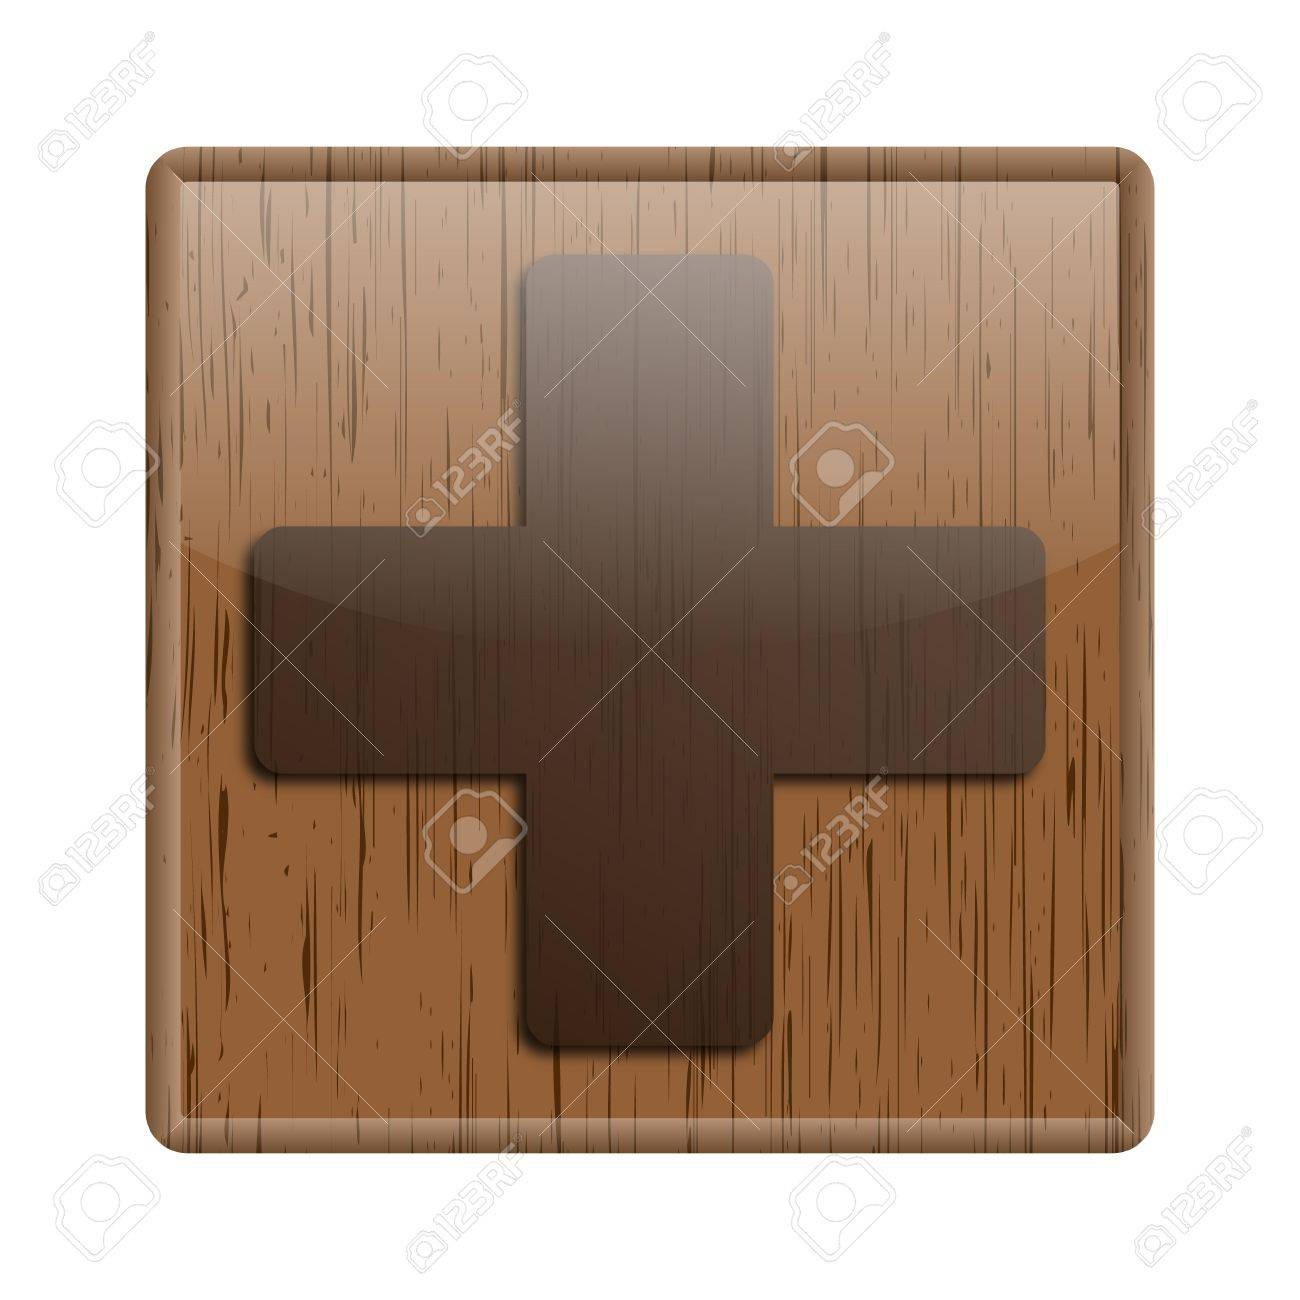 Shiny icon with brown design on wooden background Stock Photo - 20496972